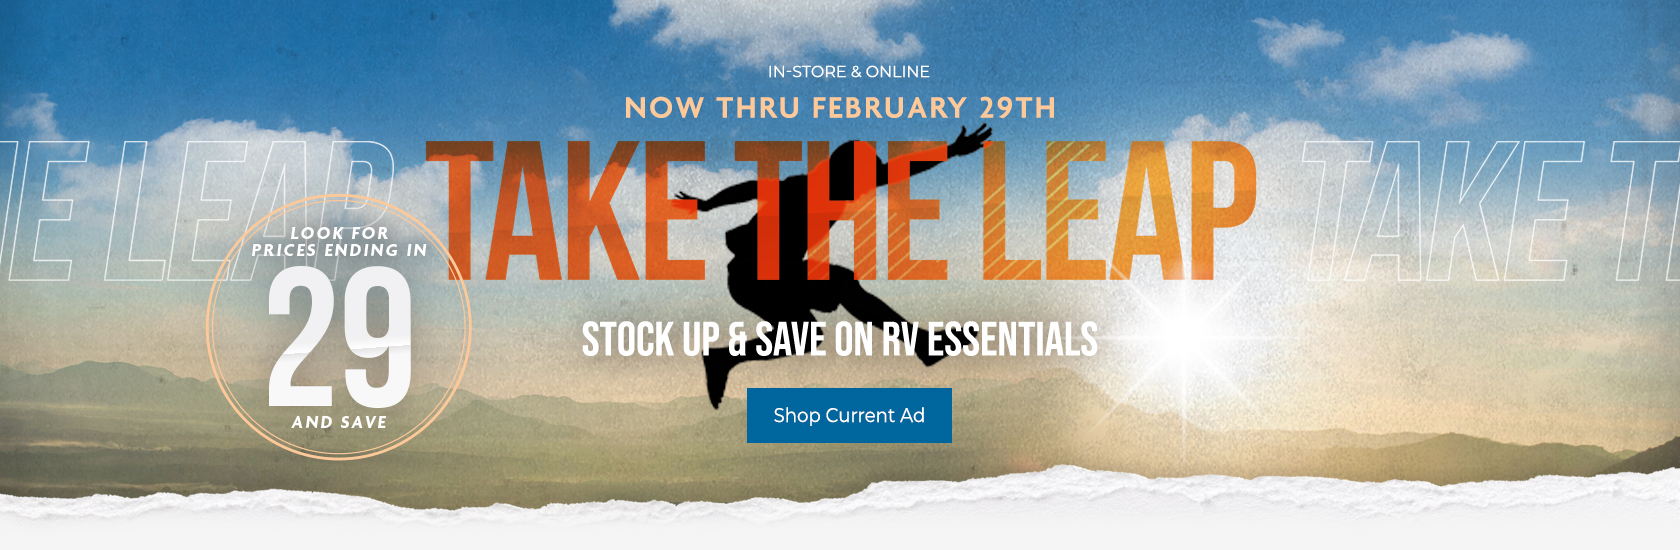 Take the leap - Stock up & save on RV essentials